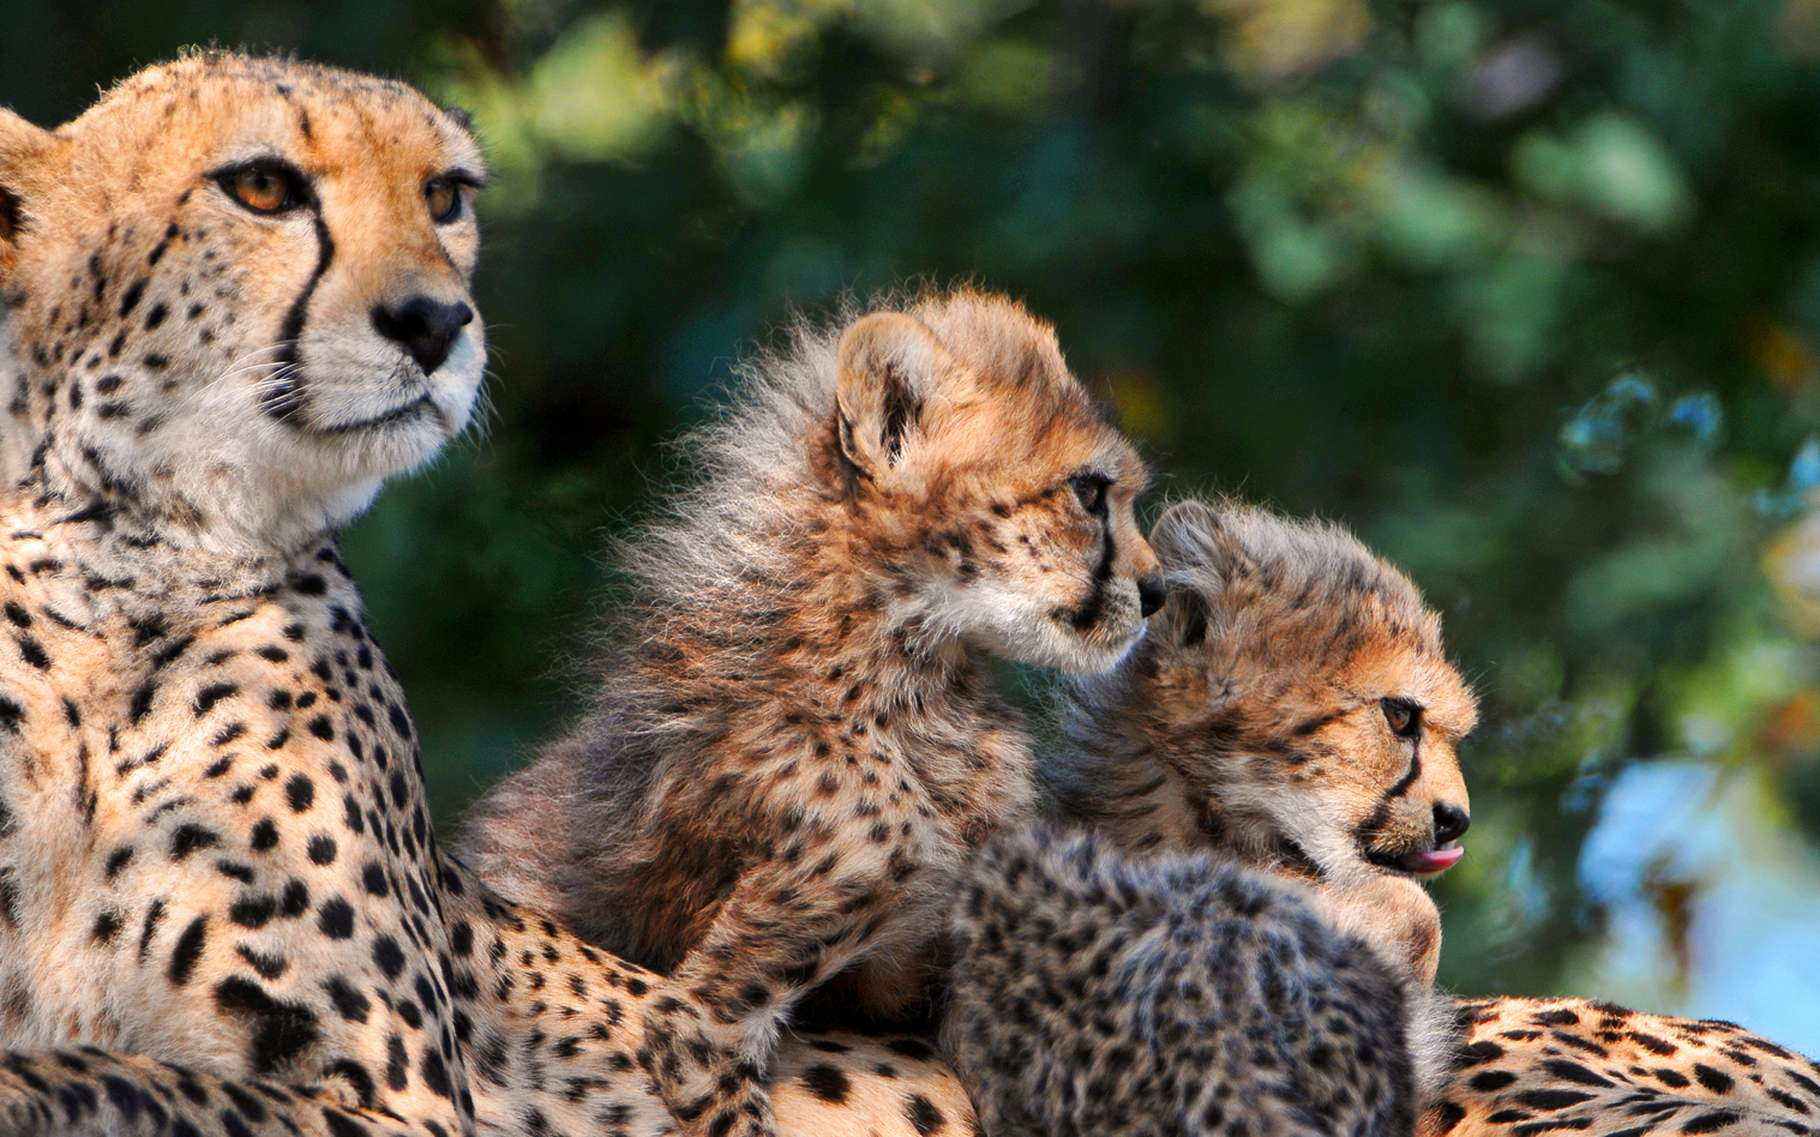 Famille de guépards. © Tambako The Jaguar, Flickr, CC by-nc 2.0